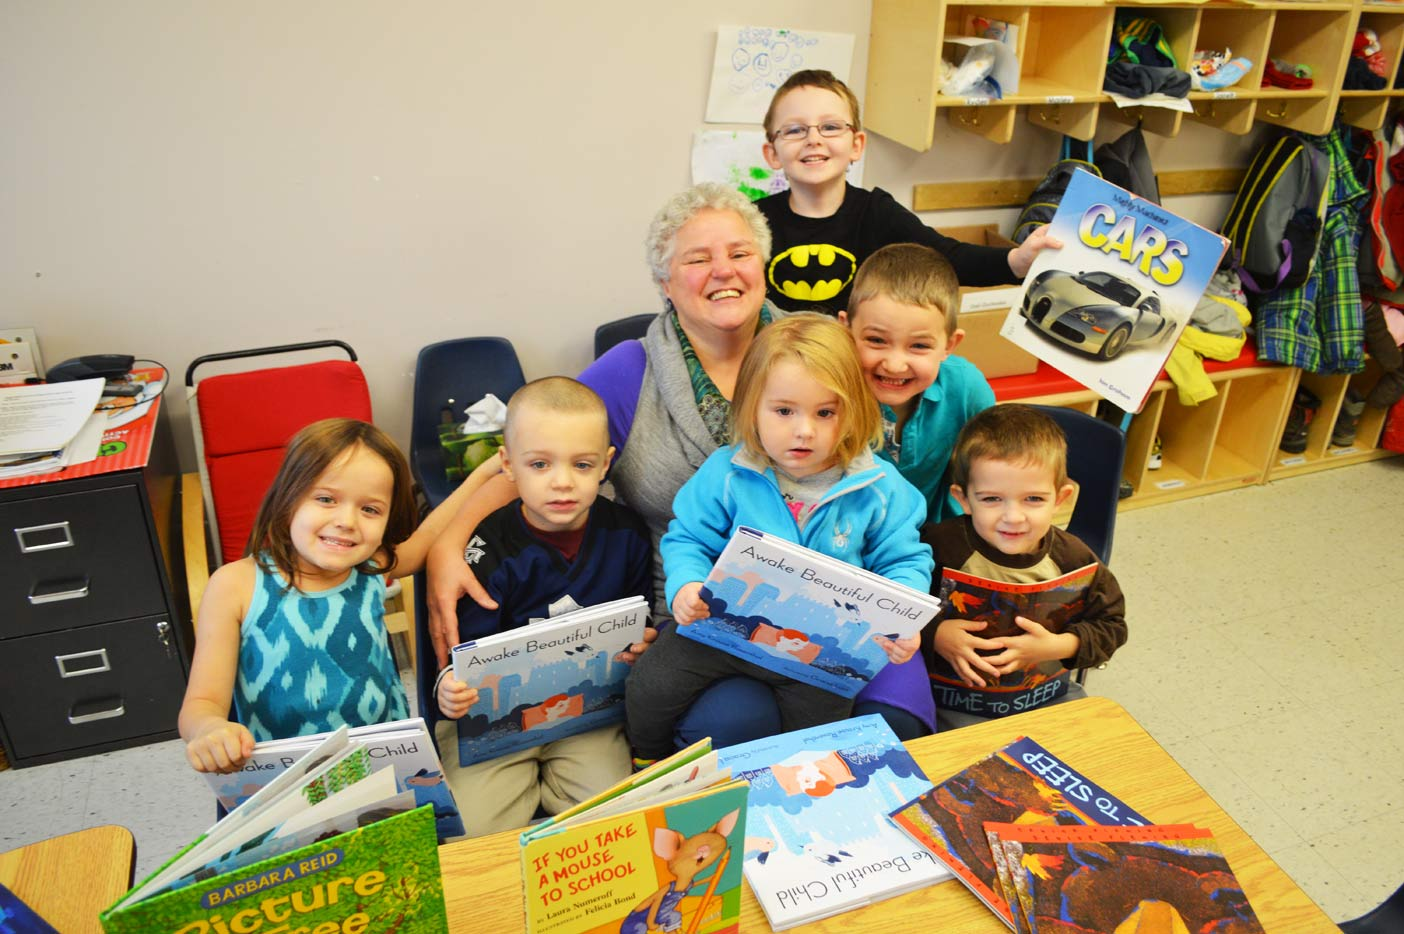 The kids at a local Montessori School are always happy to see Sandy Inkster, especially when she comes to read. They each received a free book from Inkster on Tuesday.